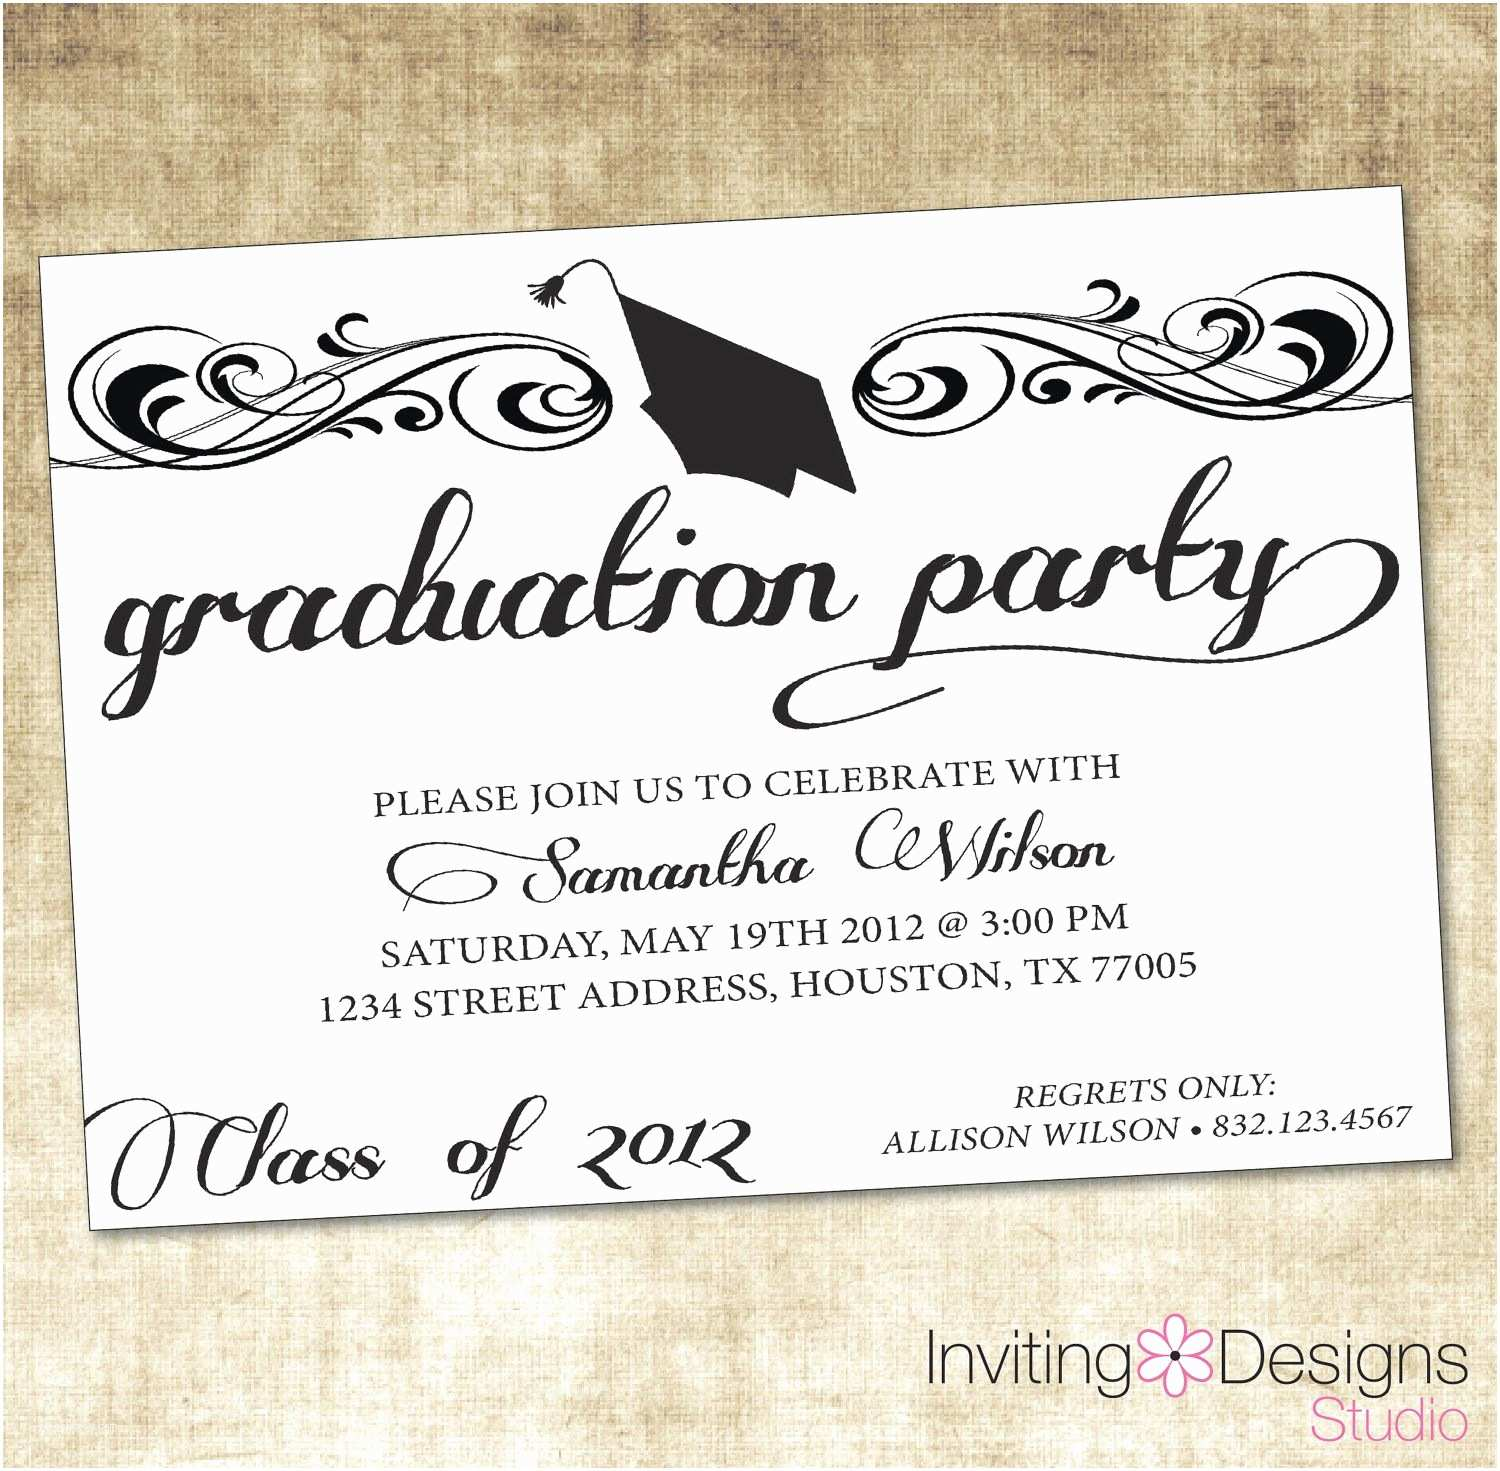 Online Graduation Invitations Image Result for Graduation Party Invitation Wording Ideas